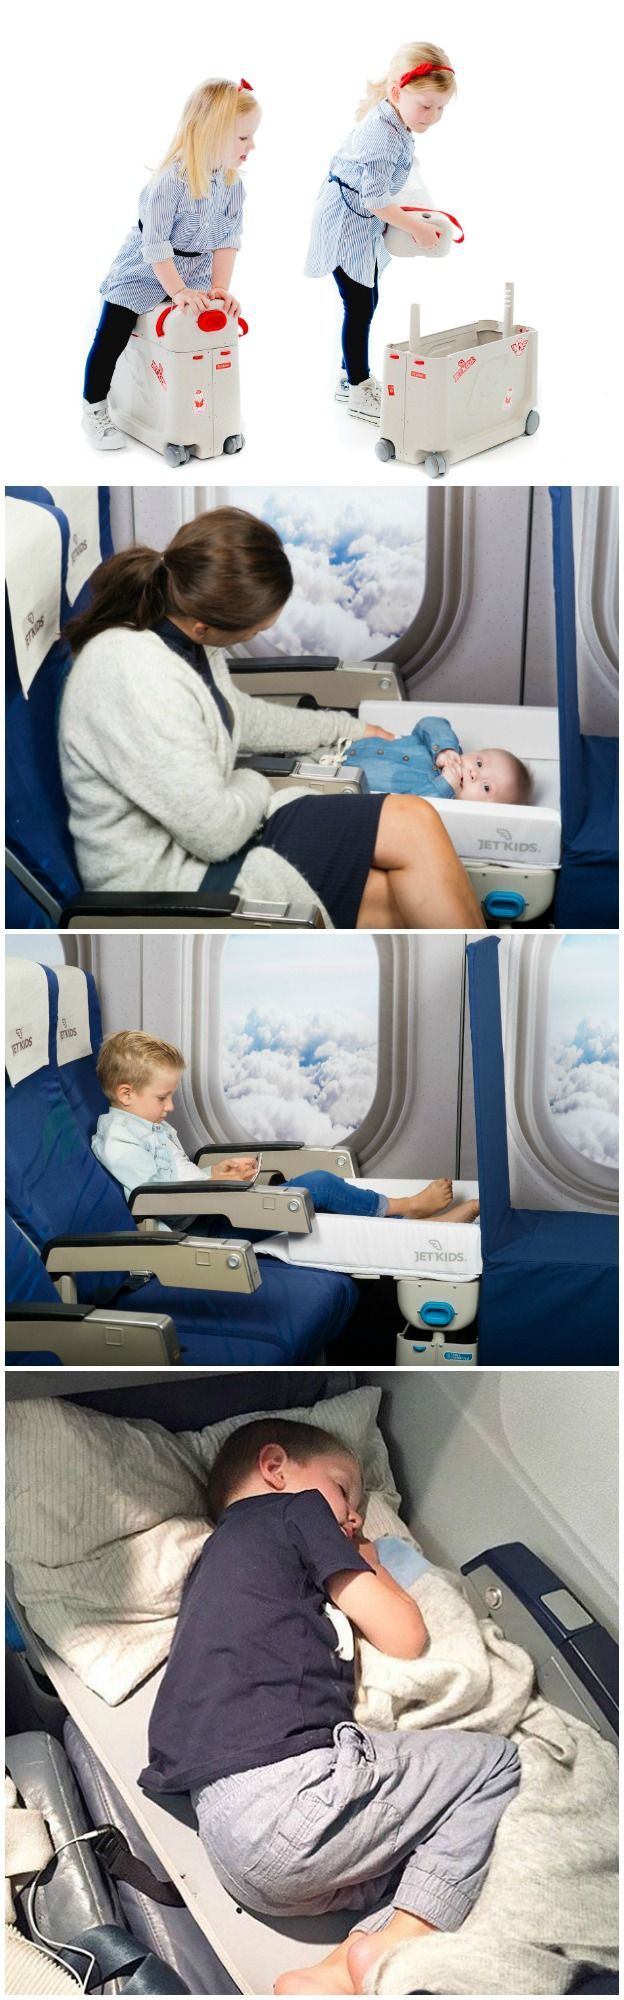 BedBox by JetKids. It is your child´s hand luggage, ride-on suitcase and inflight bed, in the very same box. (Cool Mom Ideas)